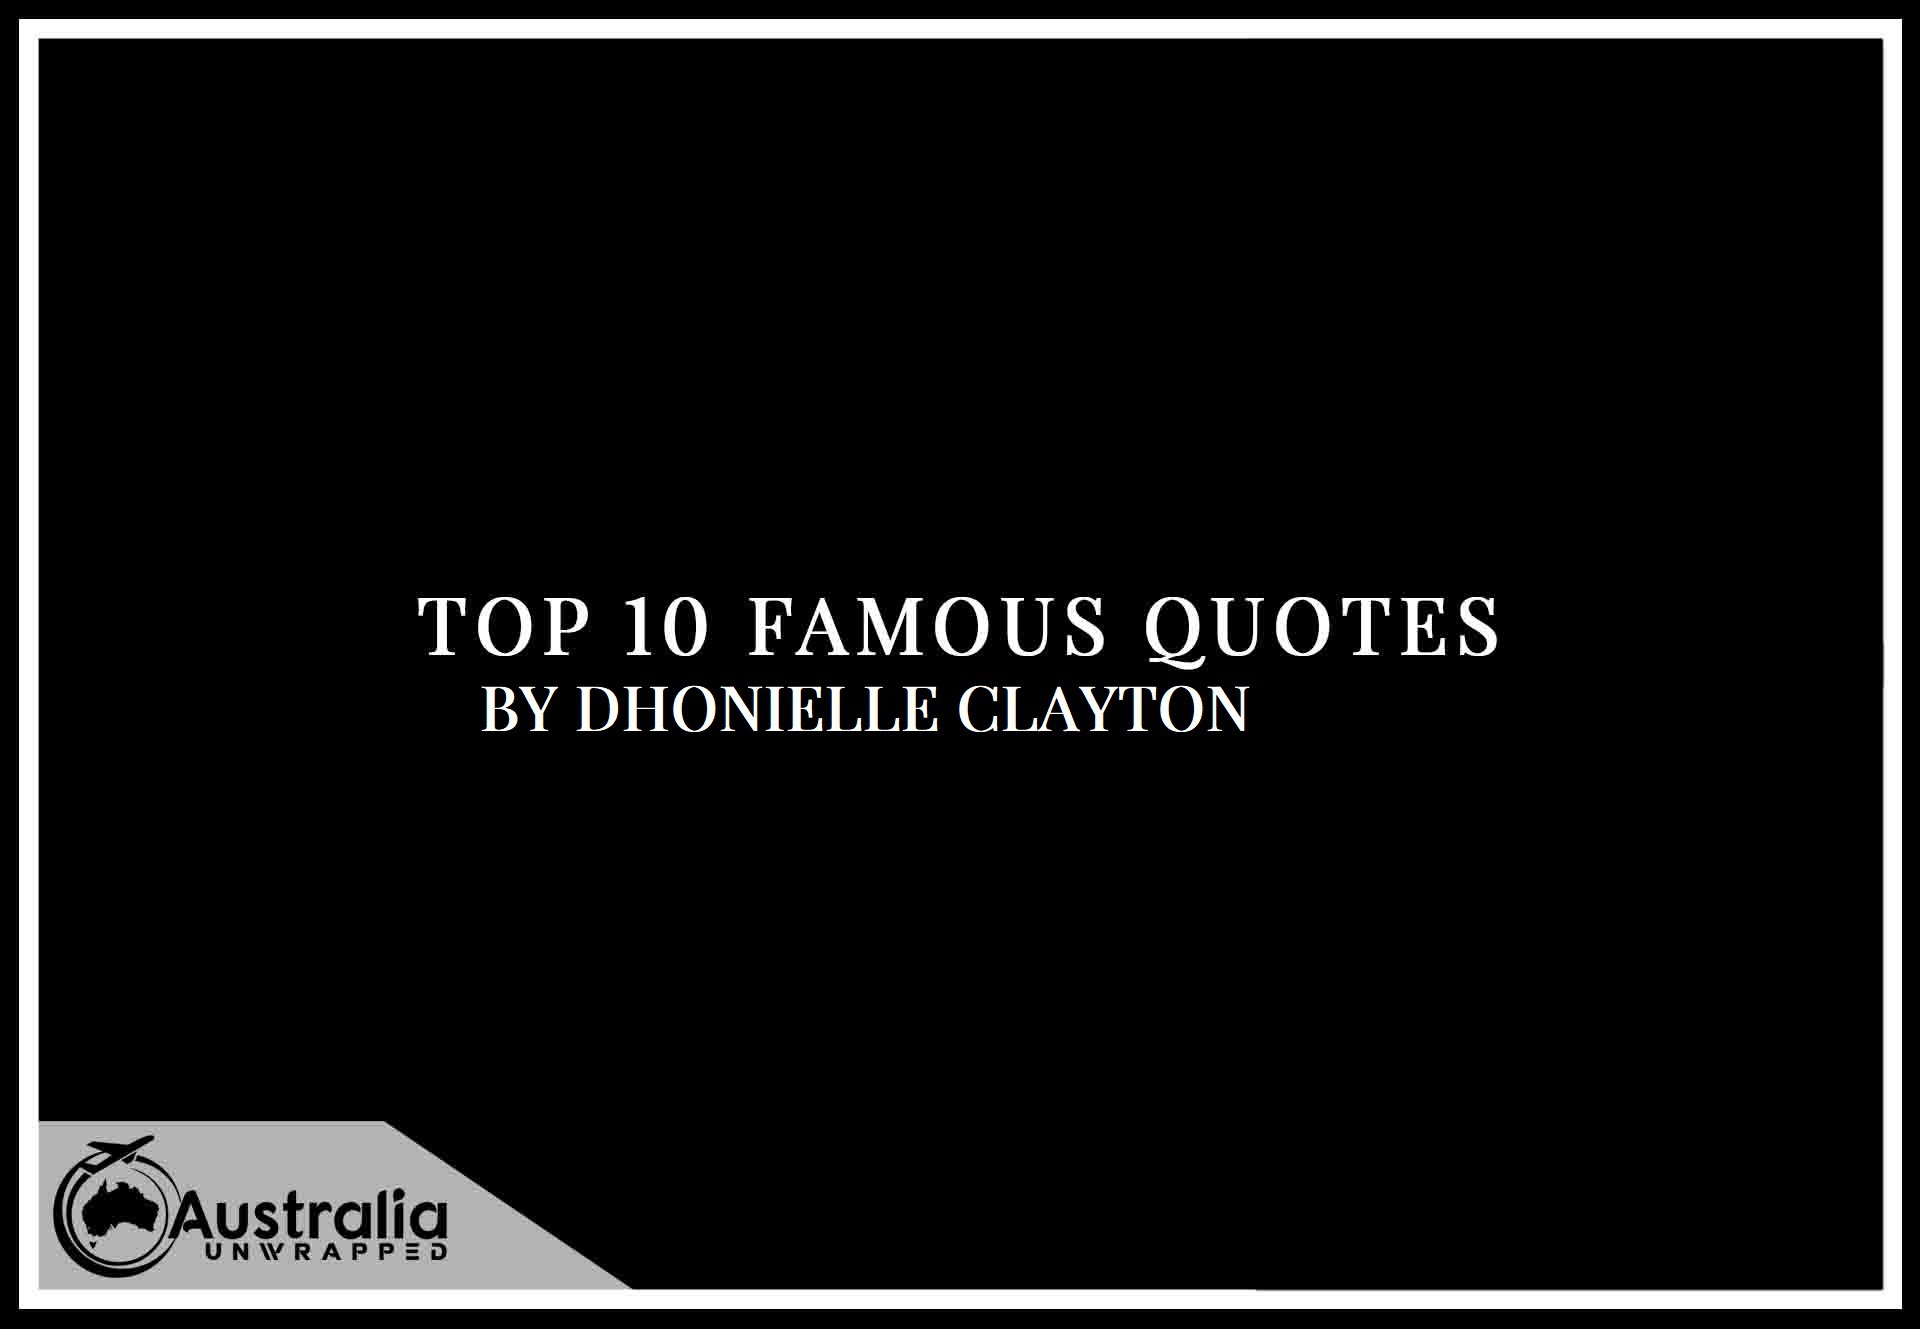 Top 10 Famous Quotes by Author Dhonielle Clayton